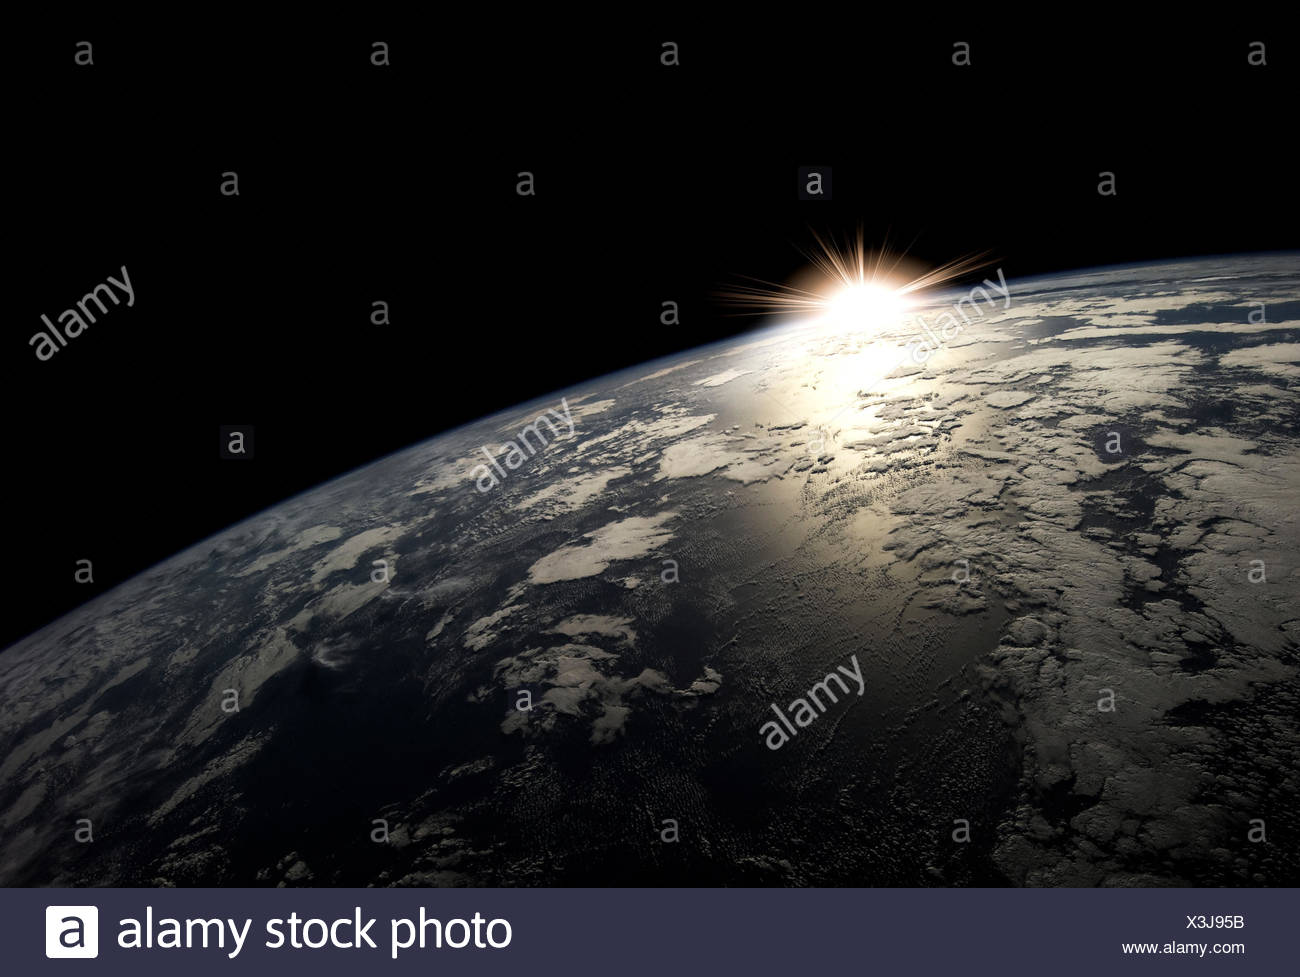 Earth from space - Stock Image